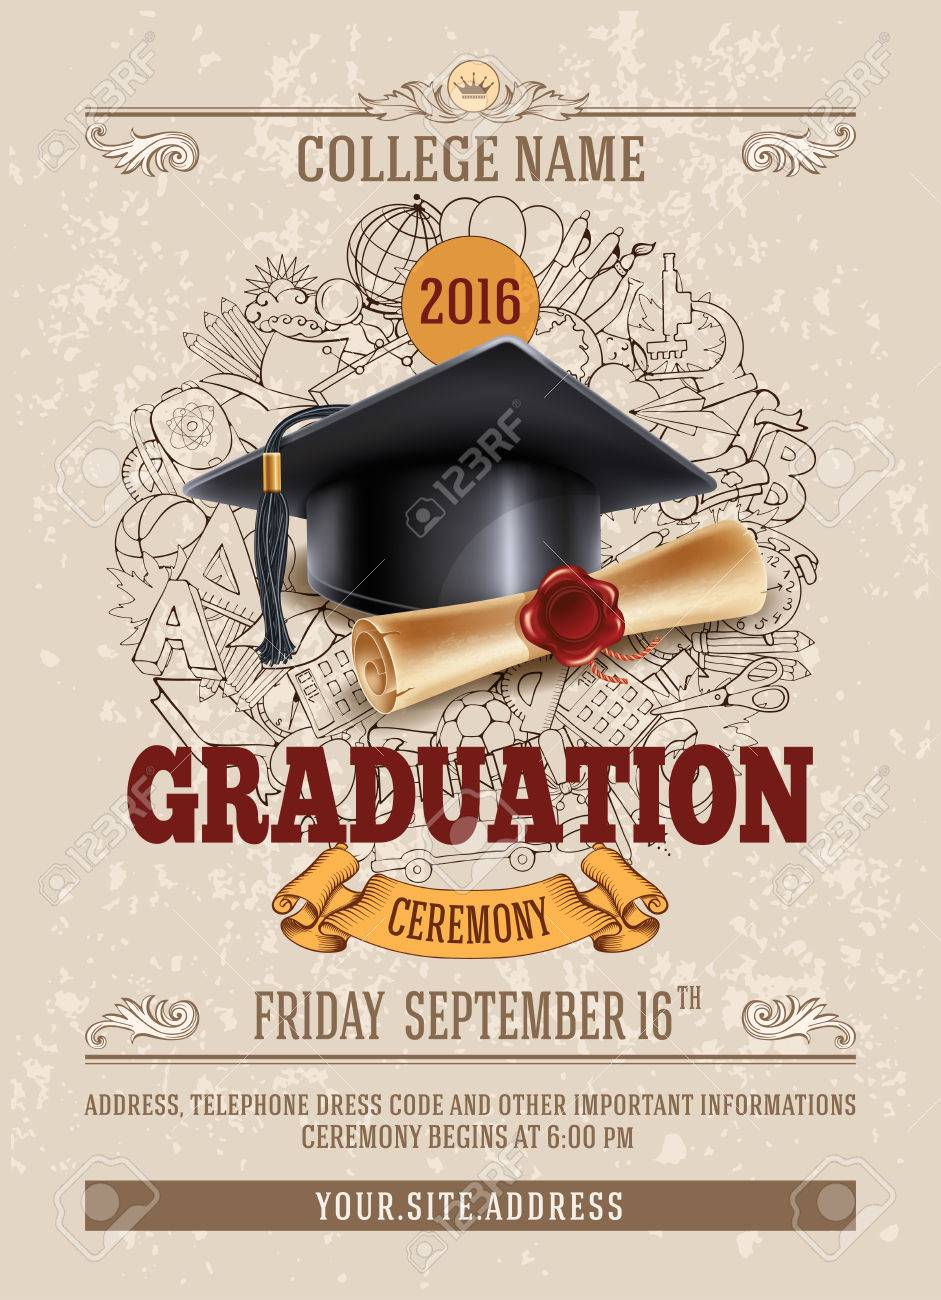 Vector template of announcement or invitation to Graduation ceremony or party with unusual realistic image of Graduation cap and diploma. There is place for your text. - 69204986